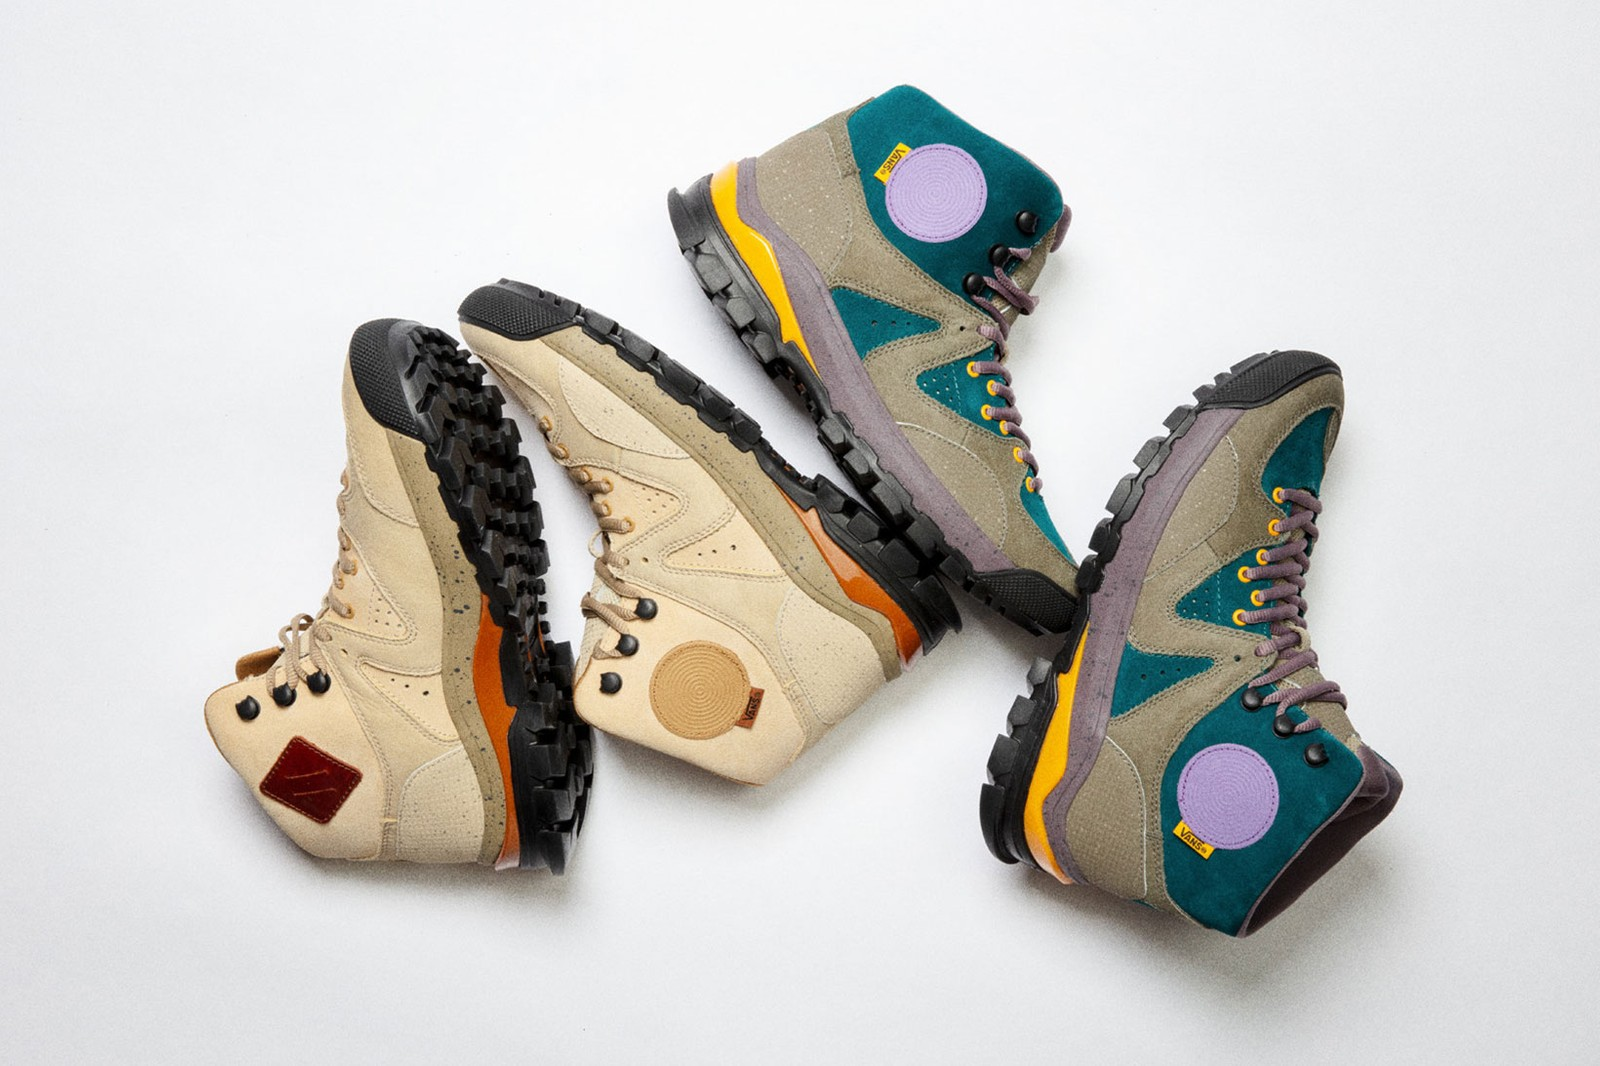 Vault by Vans AMZN TRL V3 LX Hiking Boots Shoes Taka Hayashi Release Date